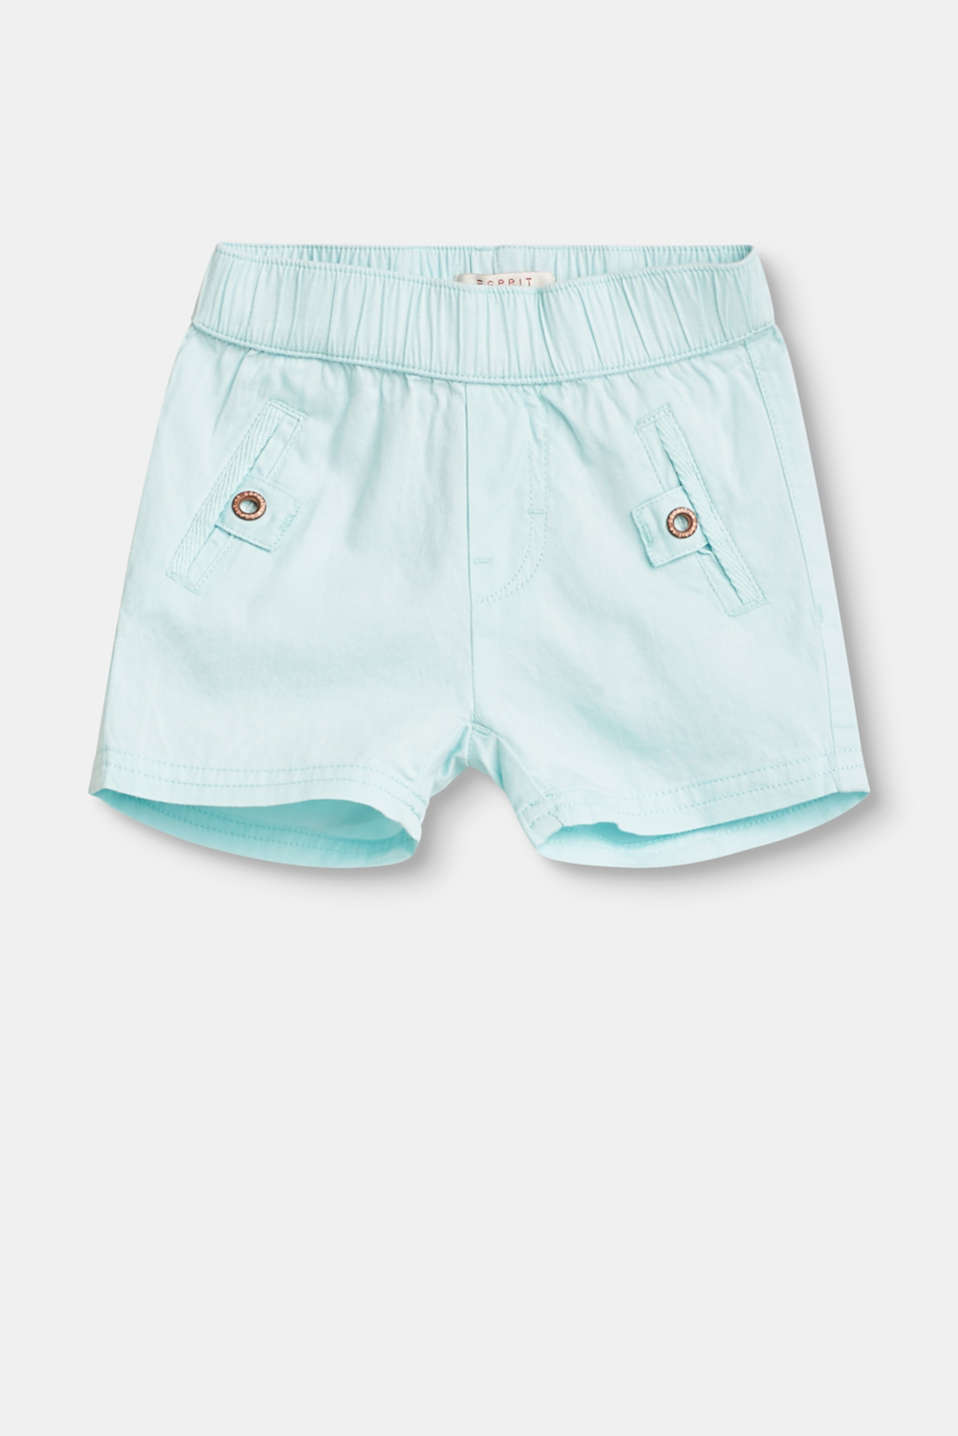 Esprit - Woven shorts with an elasticated waistband, 100% cotton